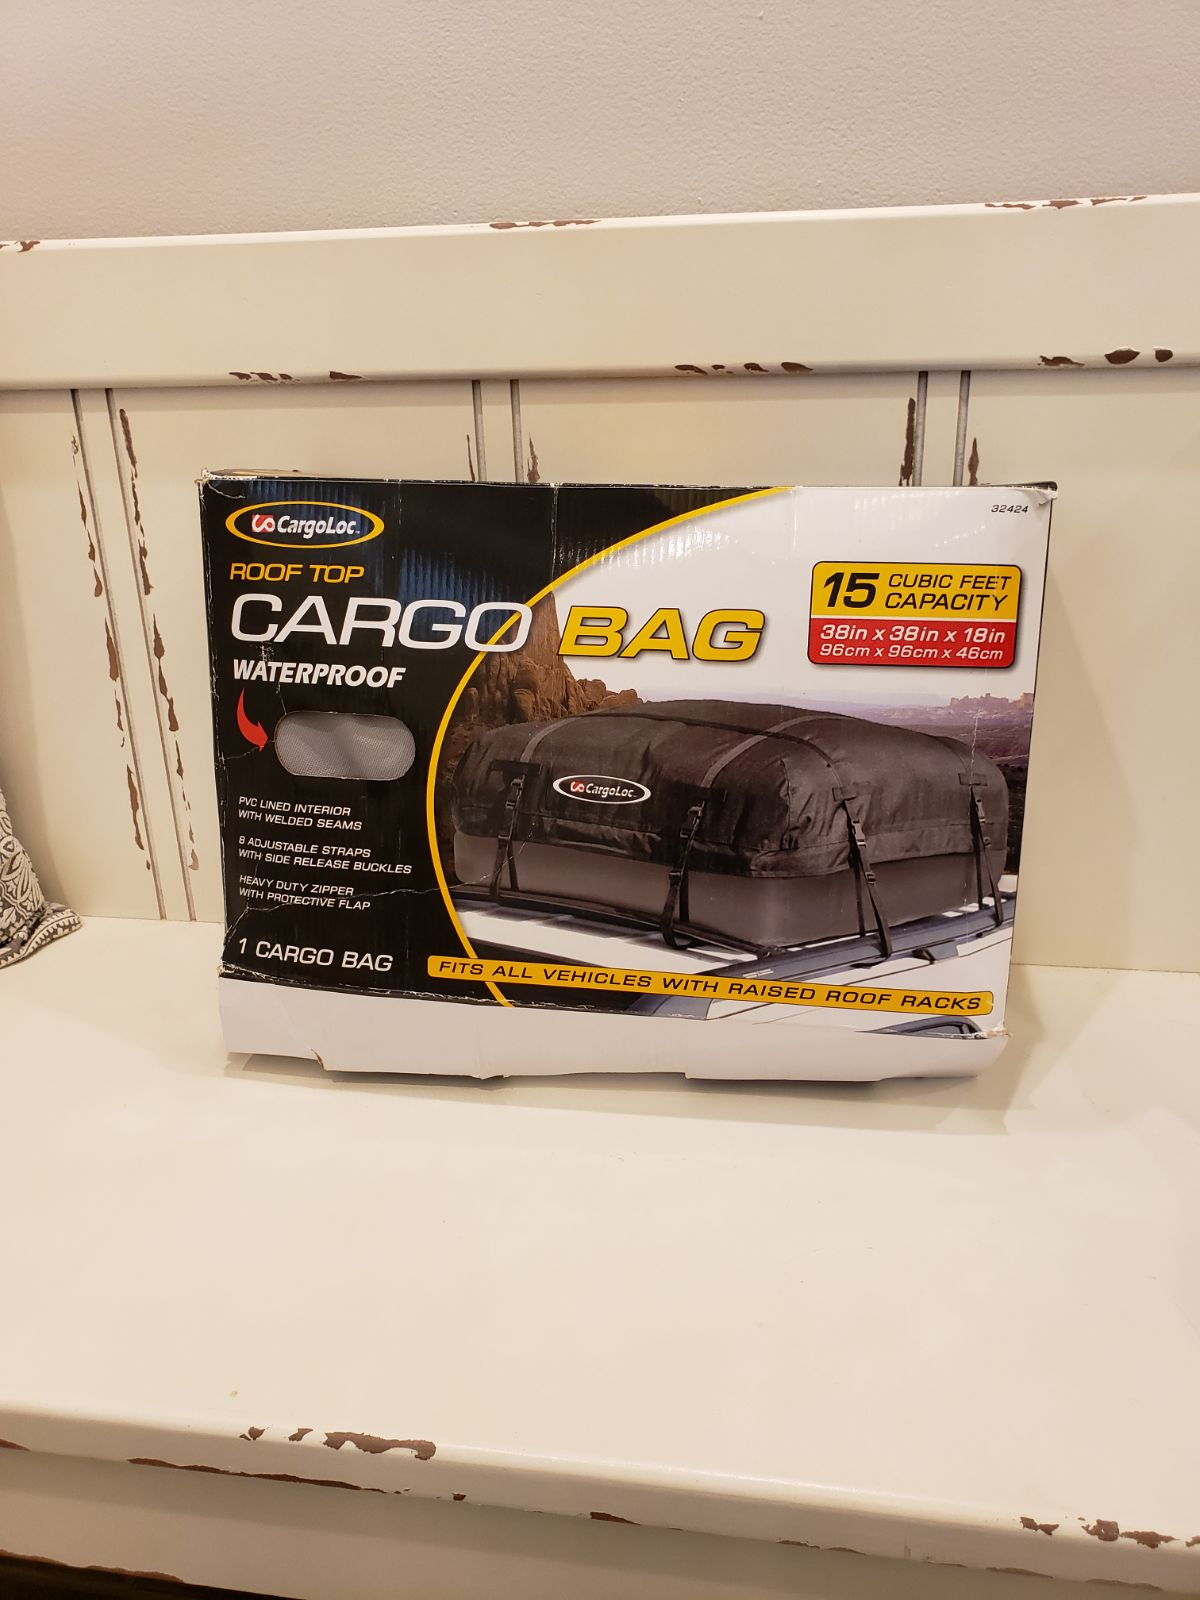 CargoLoc Rooftop Cargo BAG 15 CUBIC FT